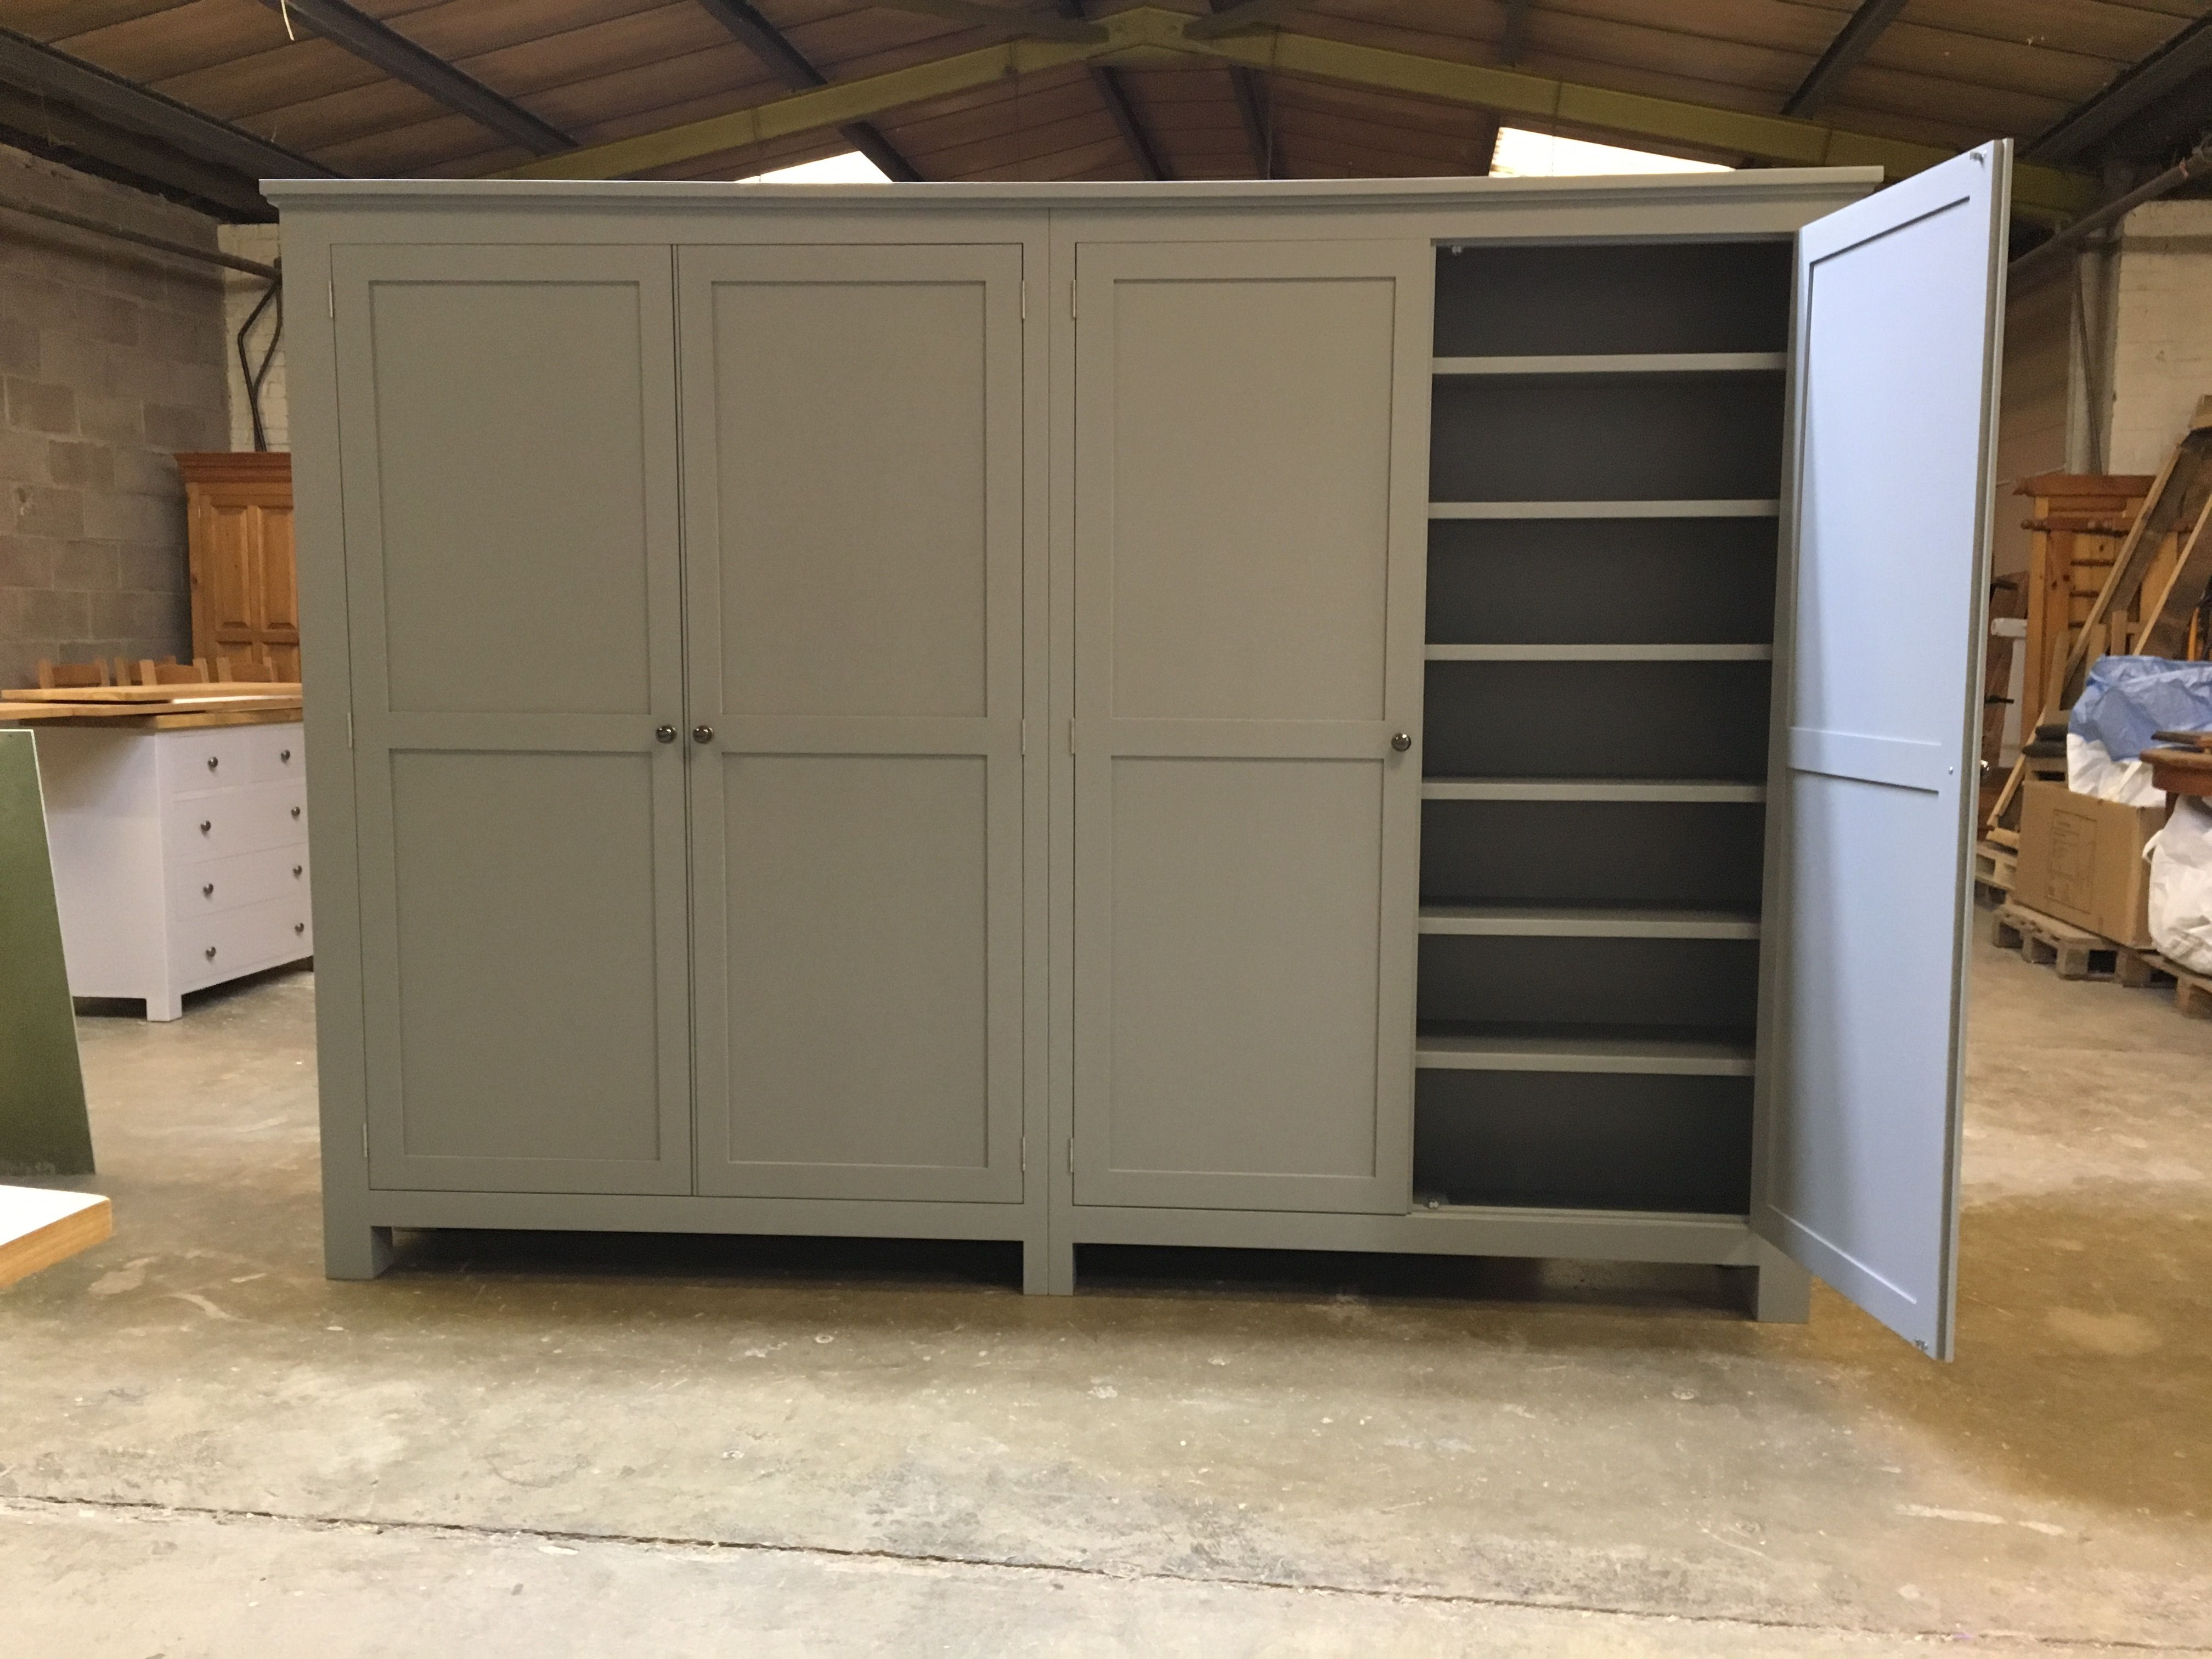 Large Linen Cupboard Painted Little Greene Mid Lead Can Be Made Any Size Or Colour Www Cobwebsfurniture Co Uk Tall Cabinet Storage Linen Cupboard Cupboard